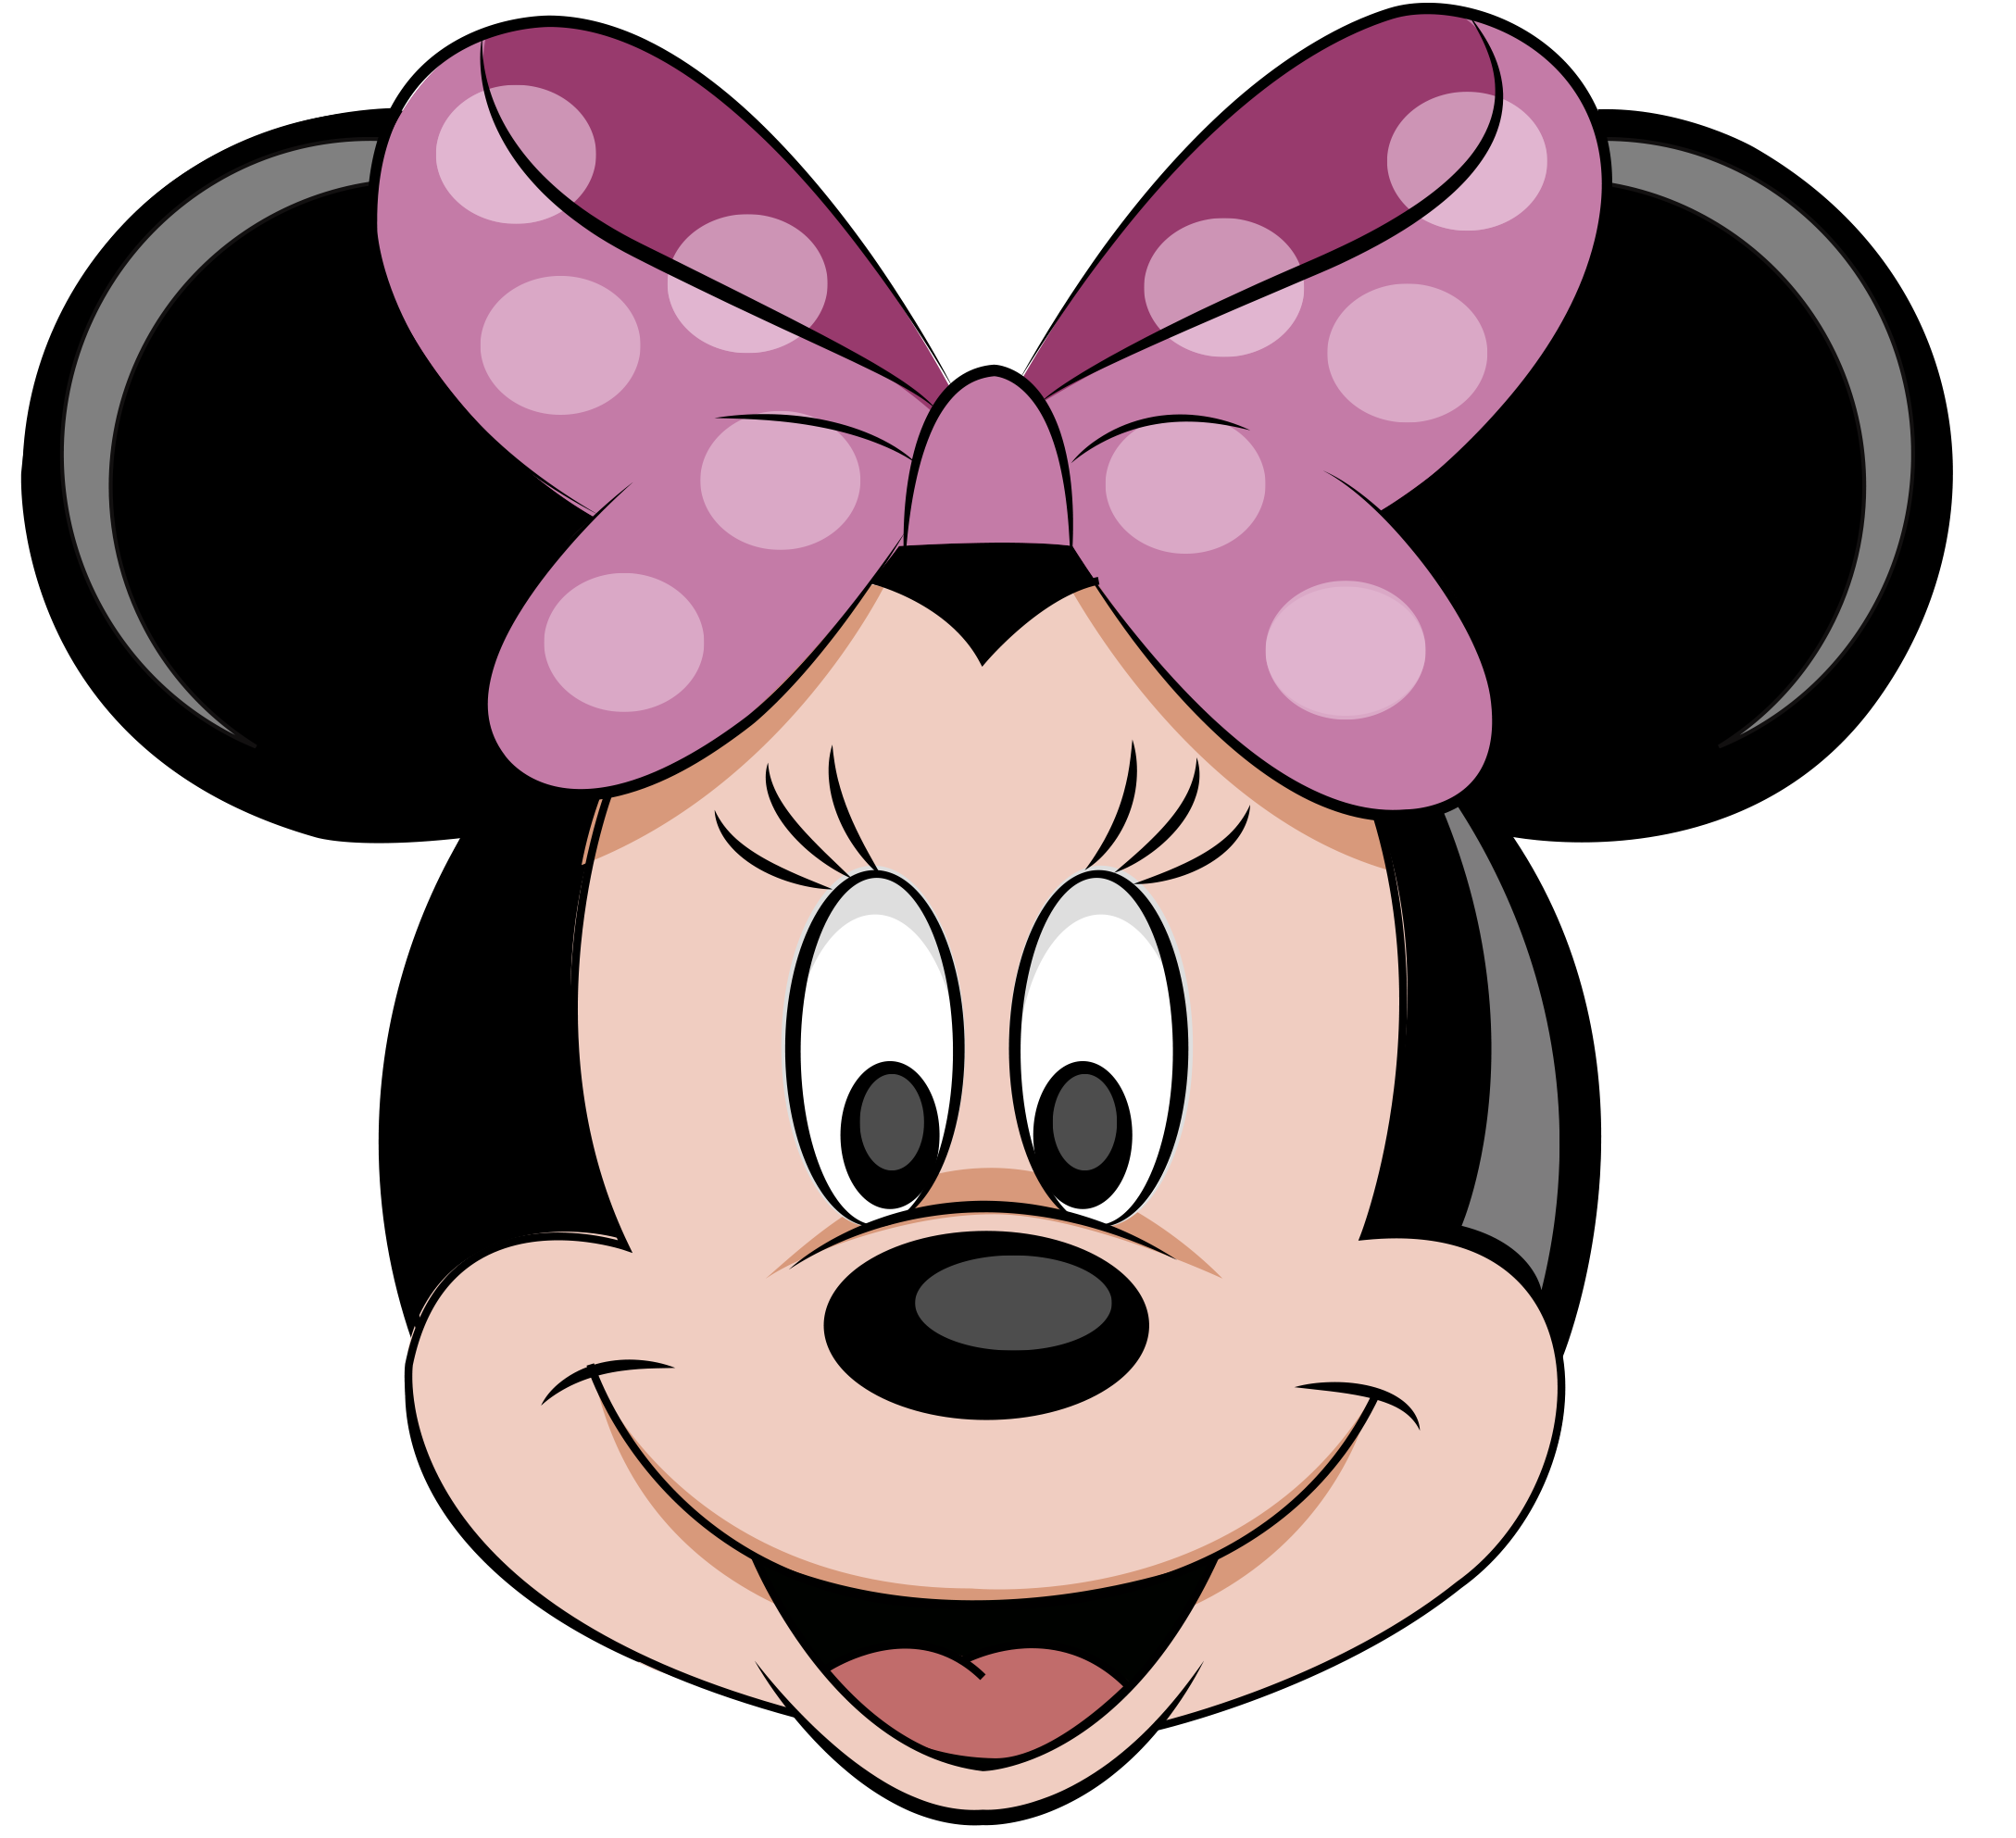 Mickey mouse and minnie mouse png. Head image purepng free